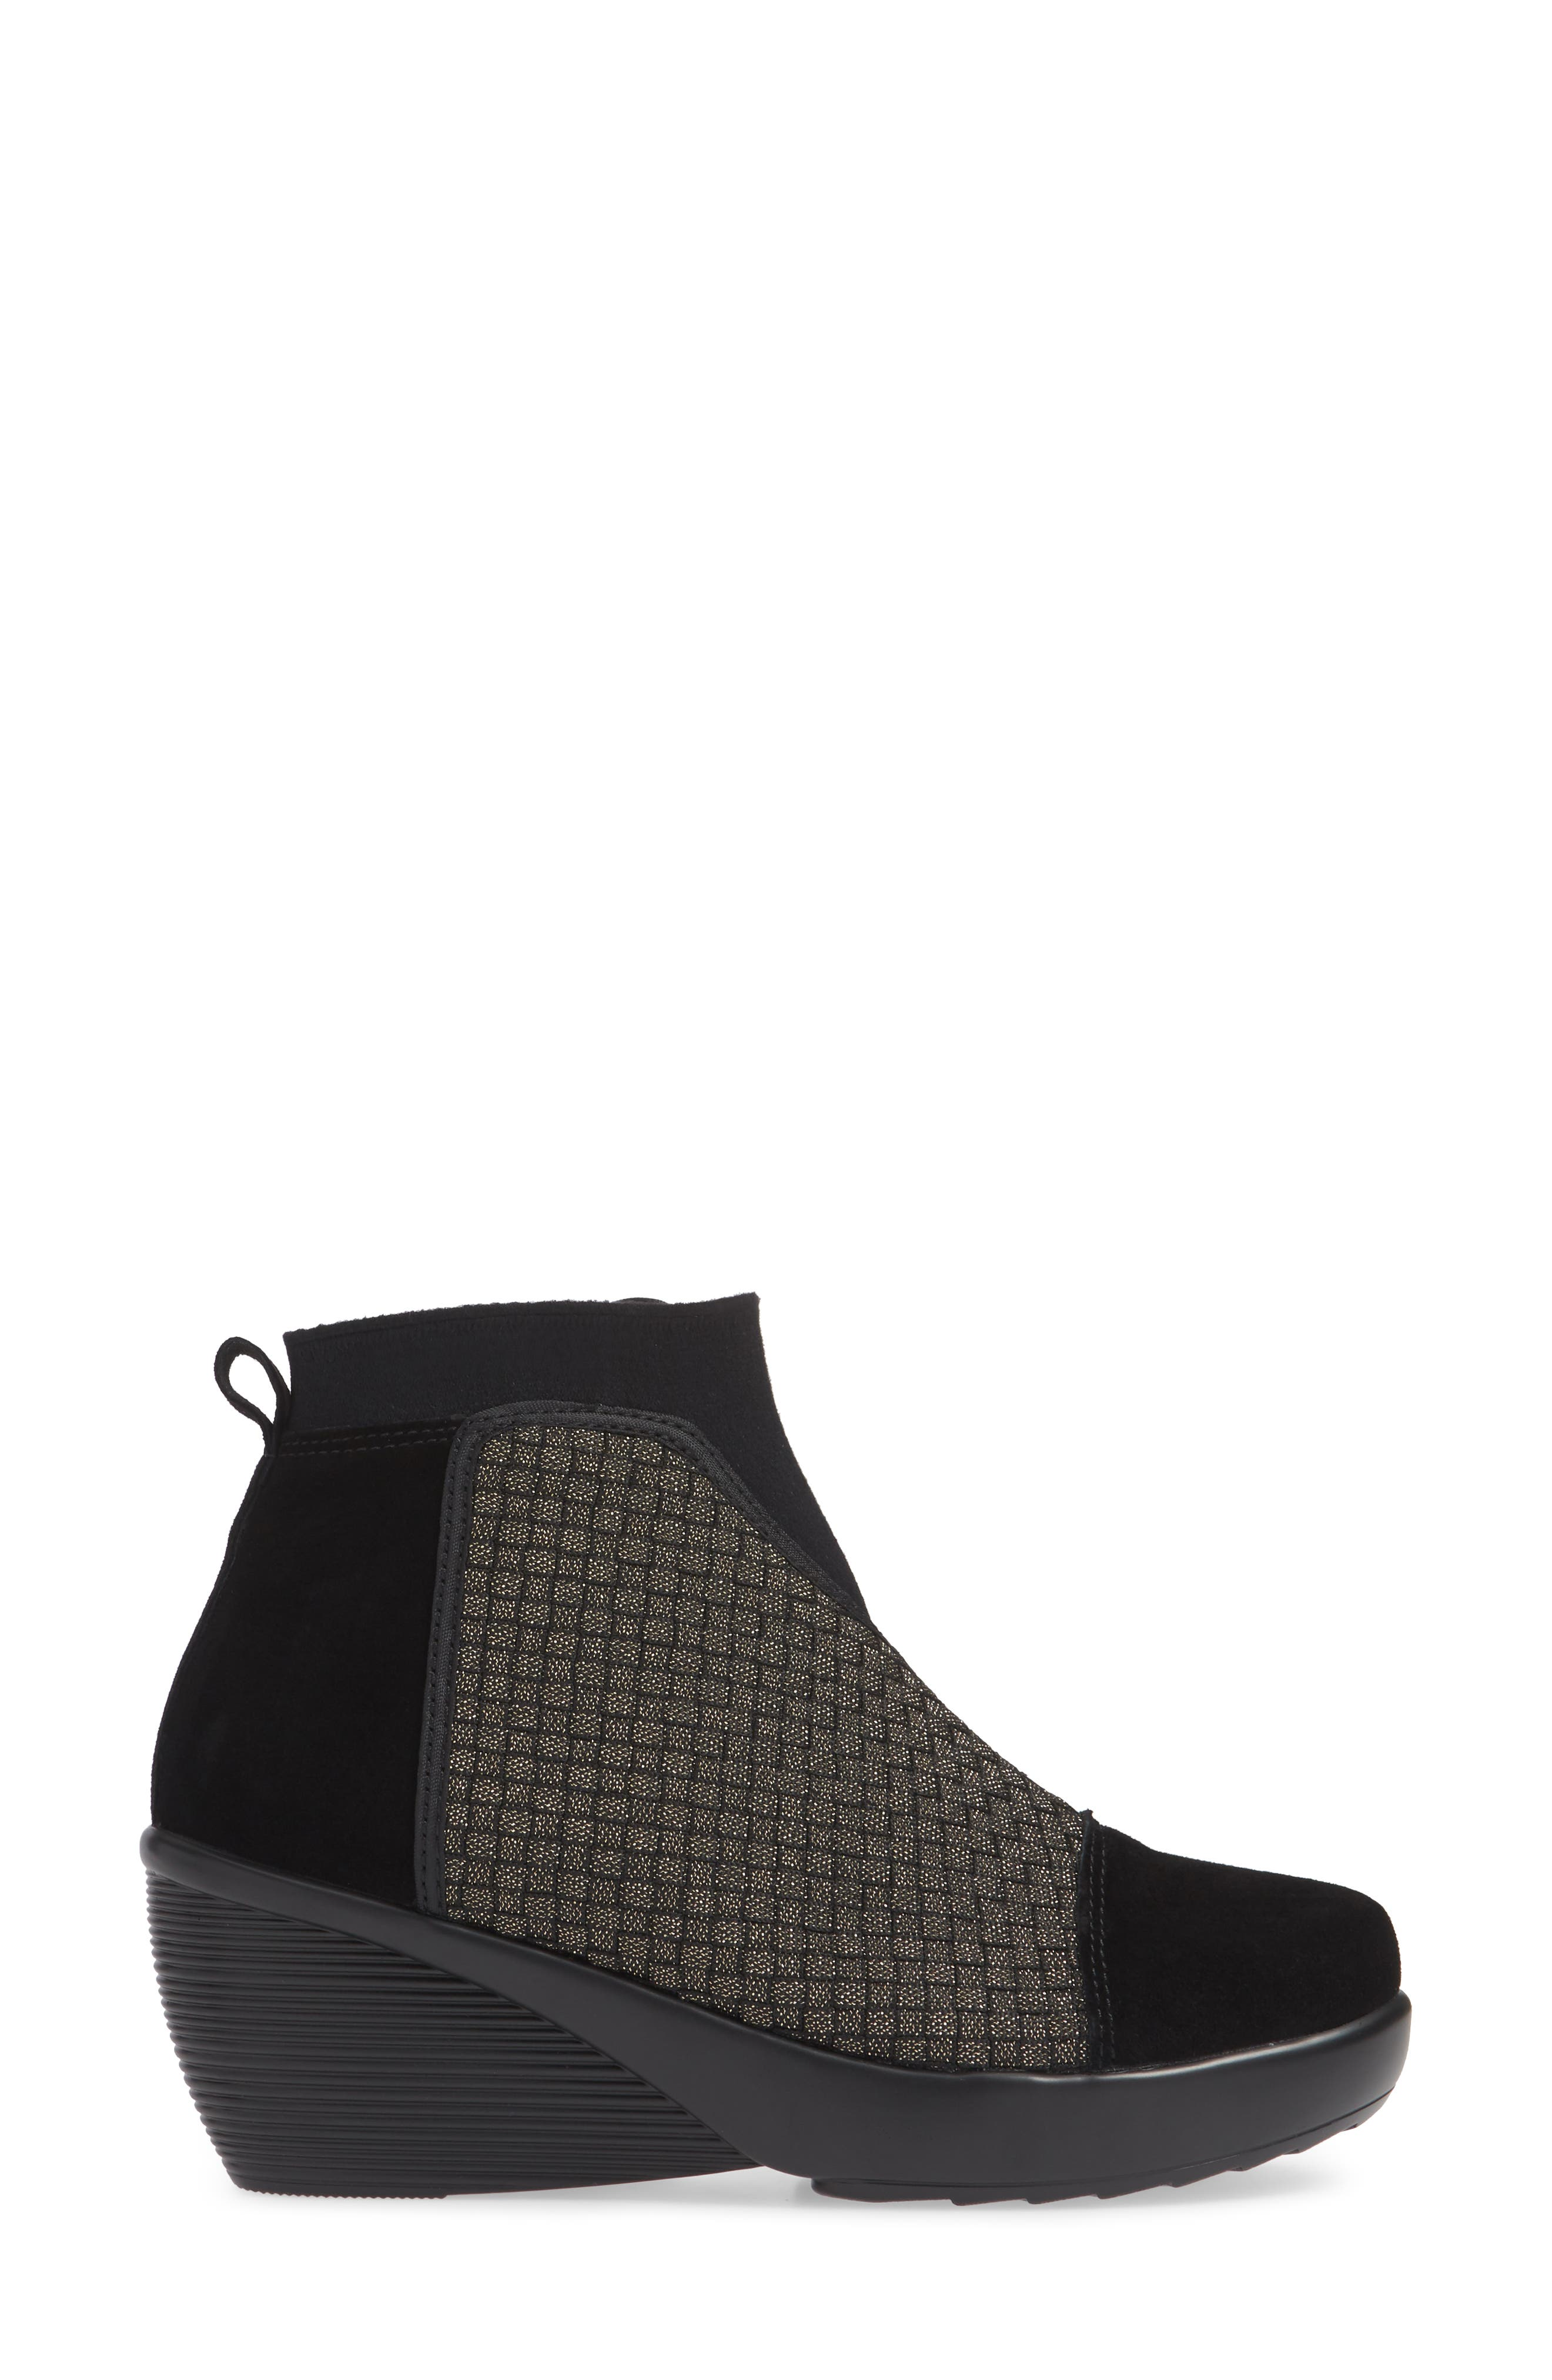 Zoe Wedge Bootie,                             Alternate thumbnail 3, color,                             GOLD BLACK SHIMMER LEATHER